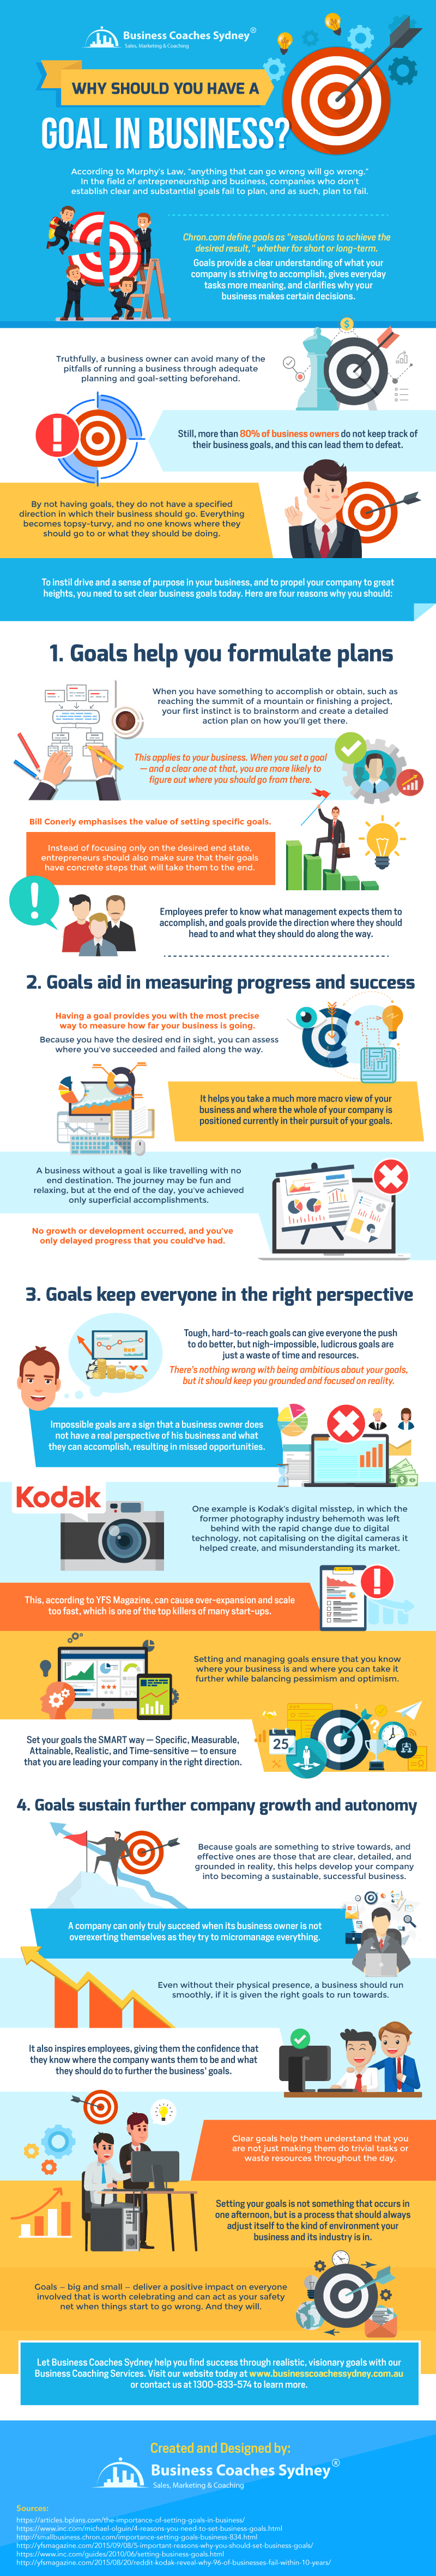 Why Should You Have A Goal in Business infographic